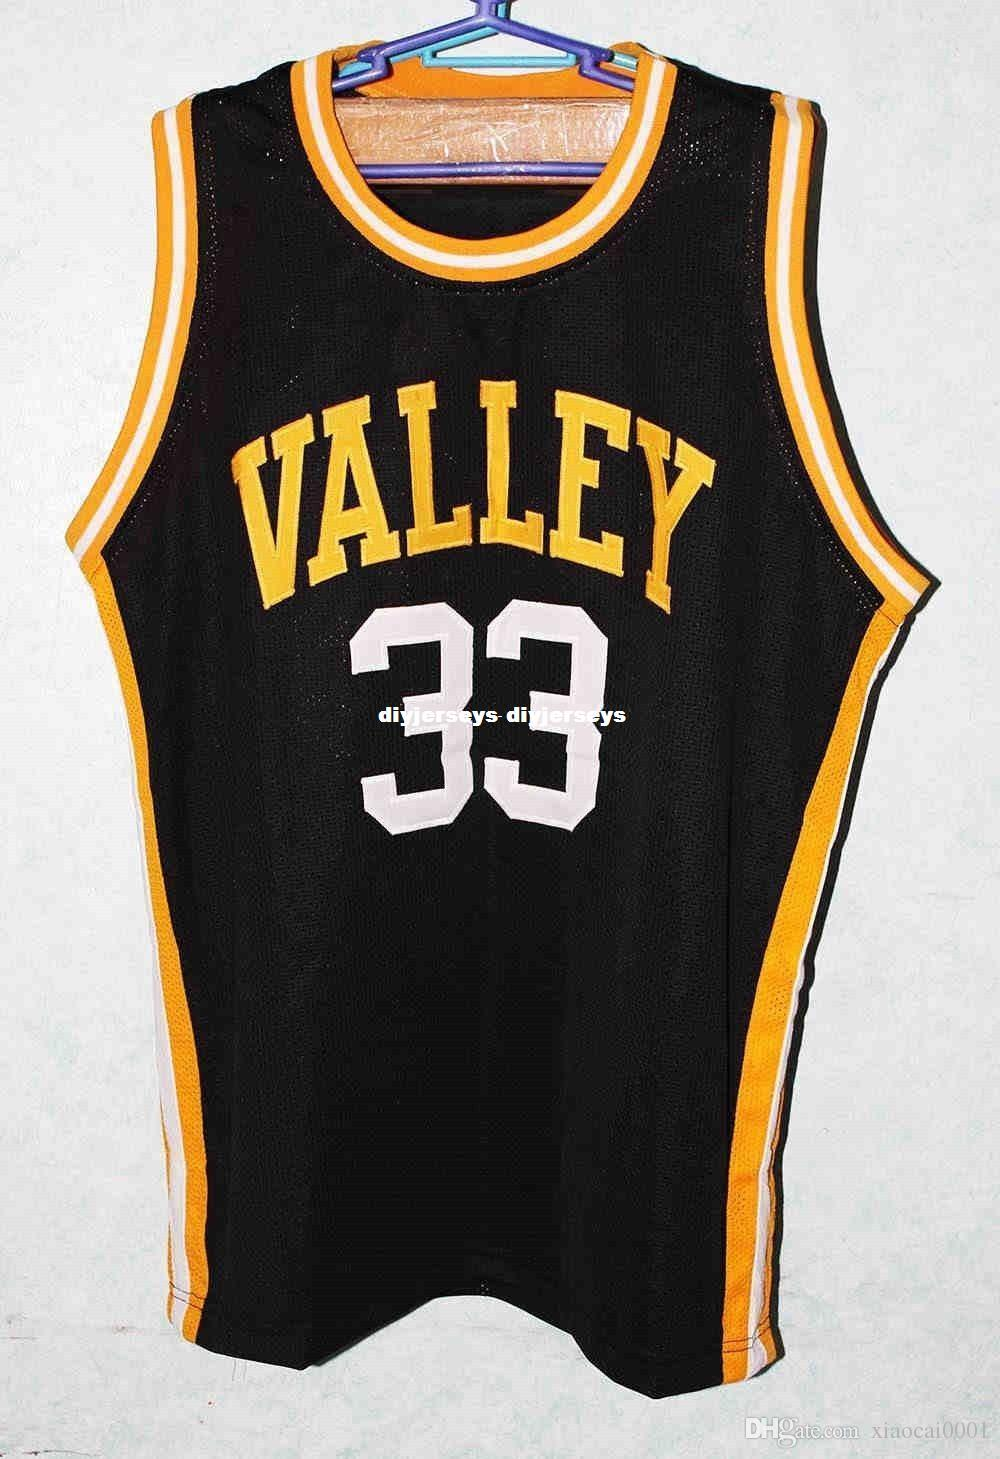 2c47b559c Cheap custom LARRY BIRD  33 VALLEY HIGH SCHOOL Basketball Jersey Black  White Embroidery Stitches Customize any size and name